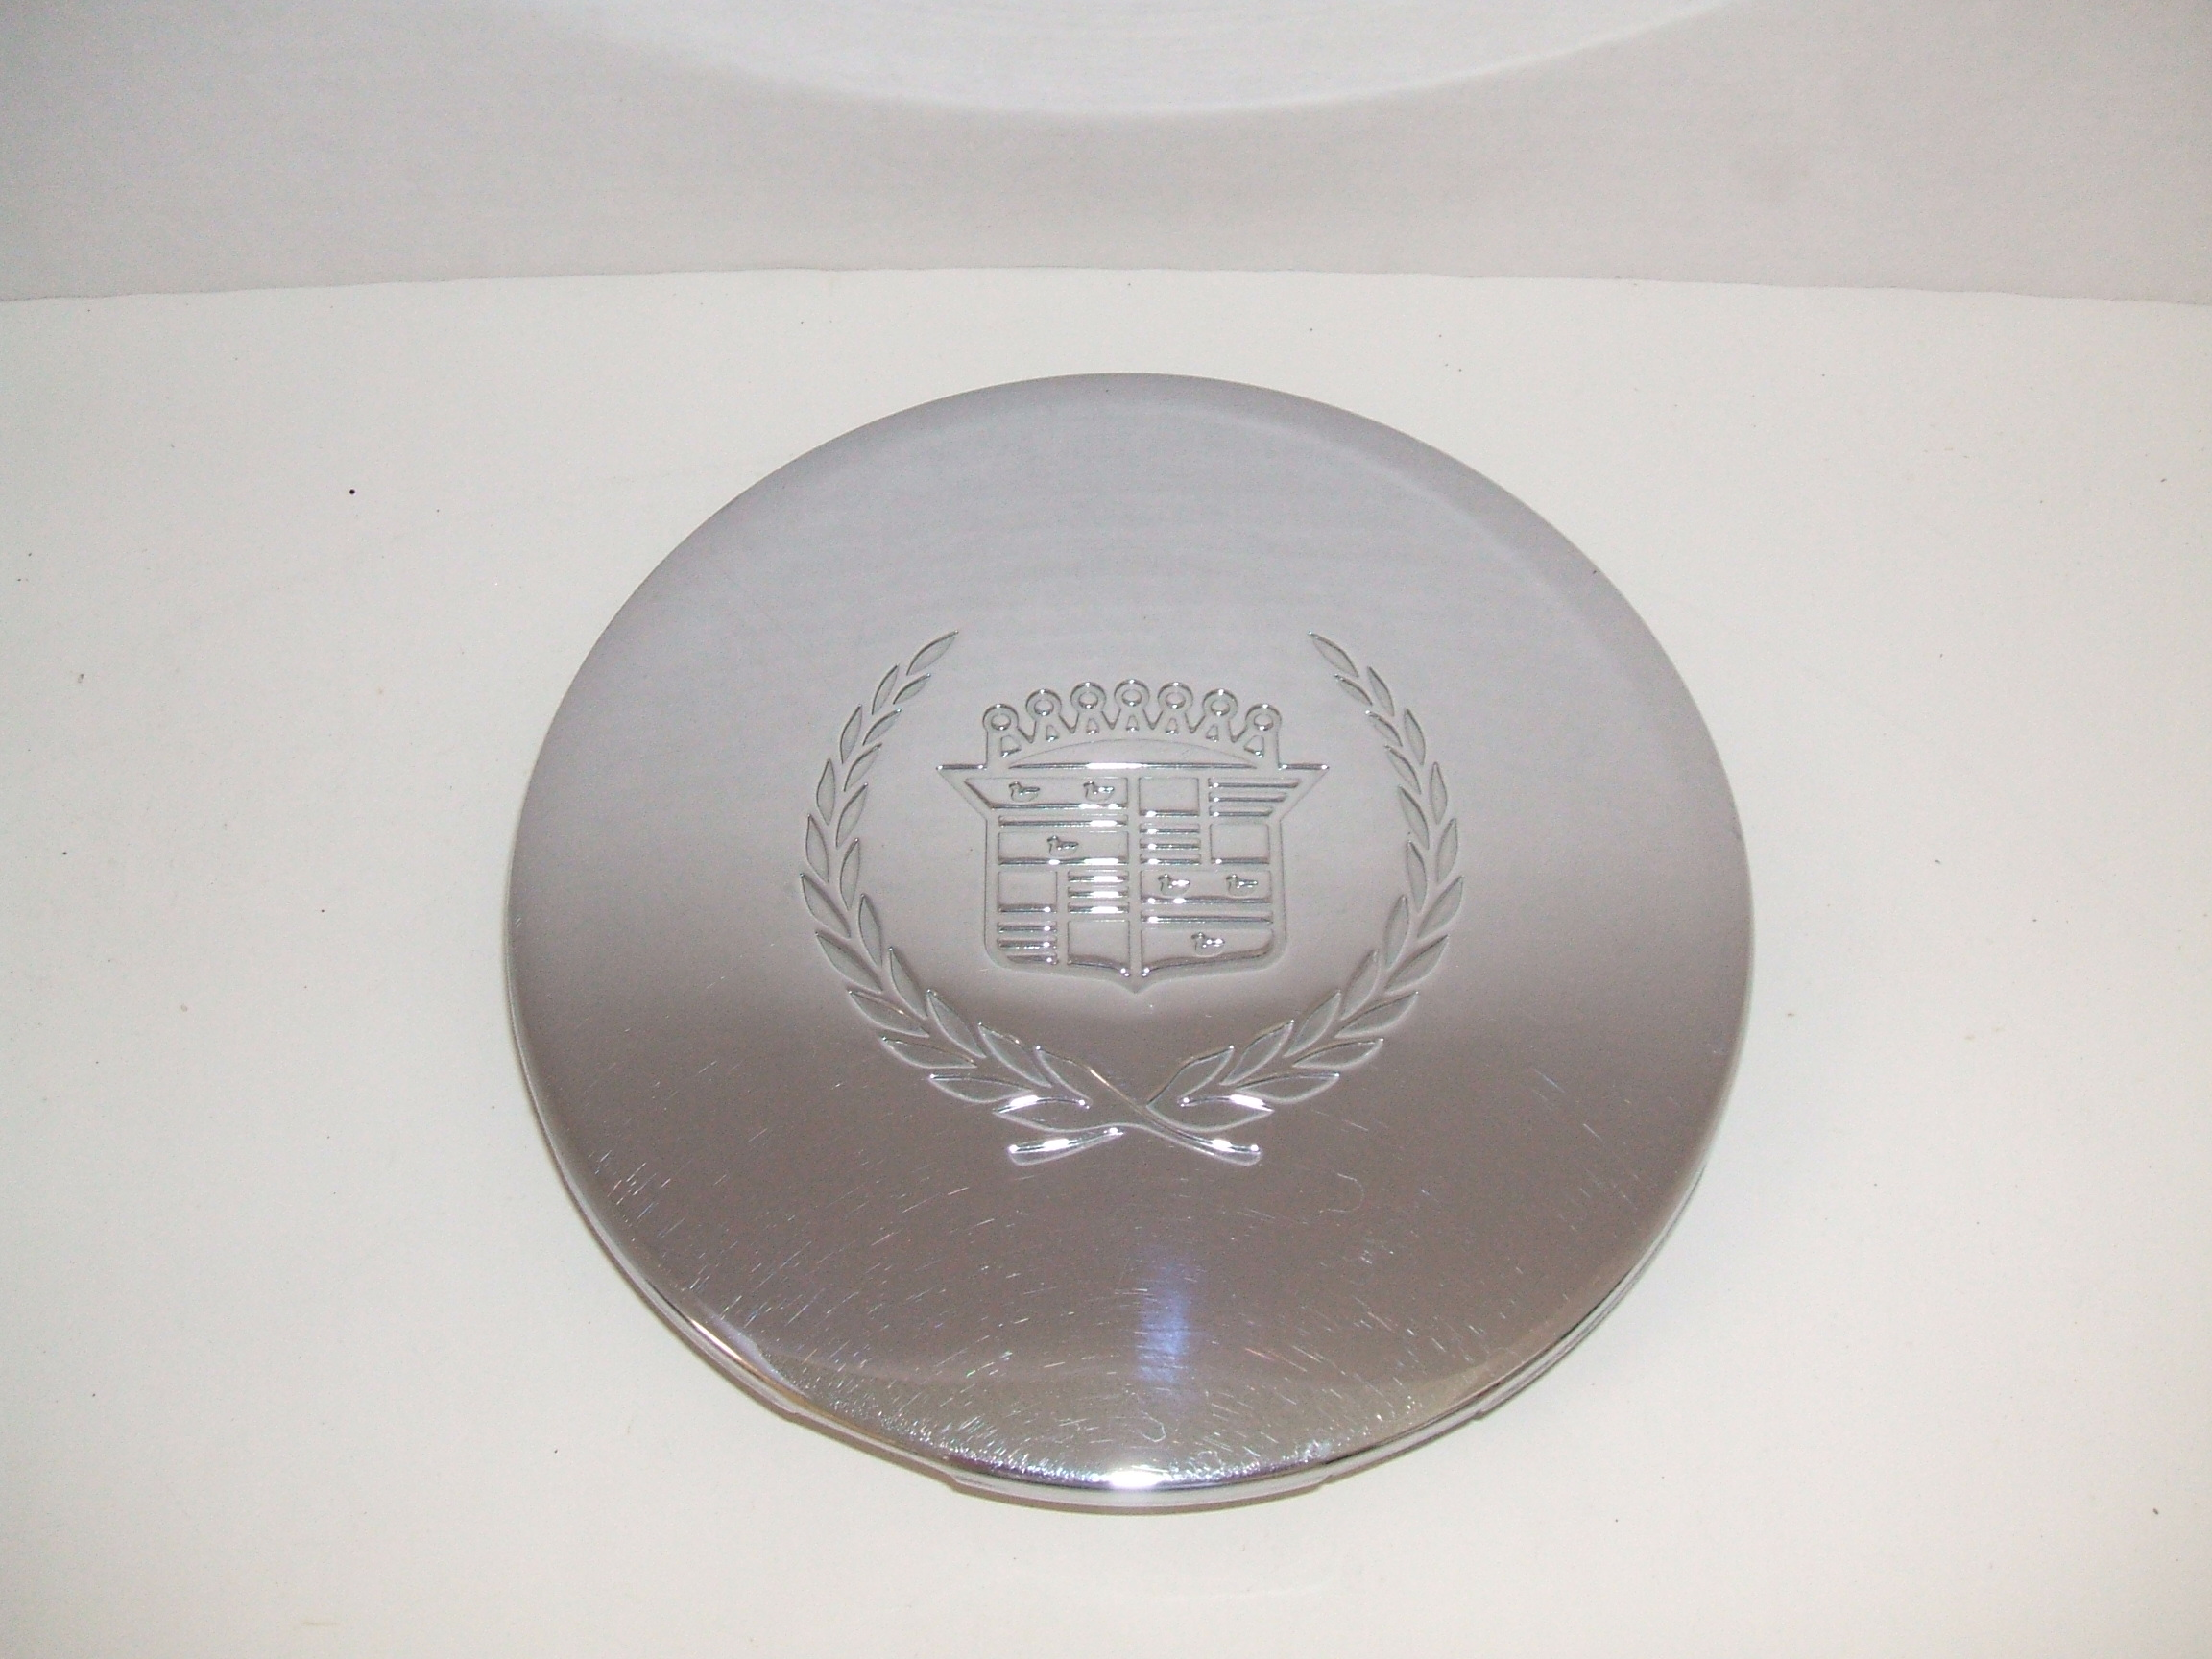 Cadillac Deville 93-99 Chrome Center Cap 4511 P/N 03543663